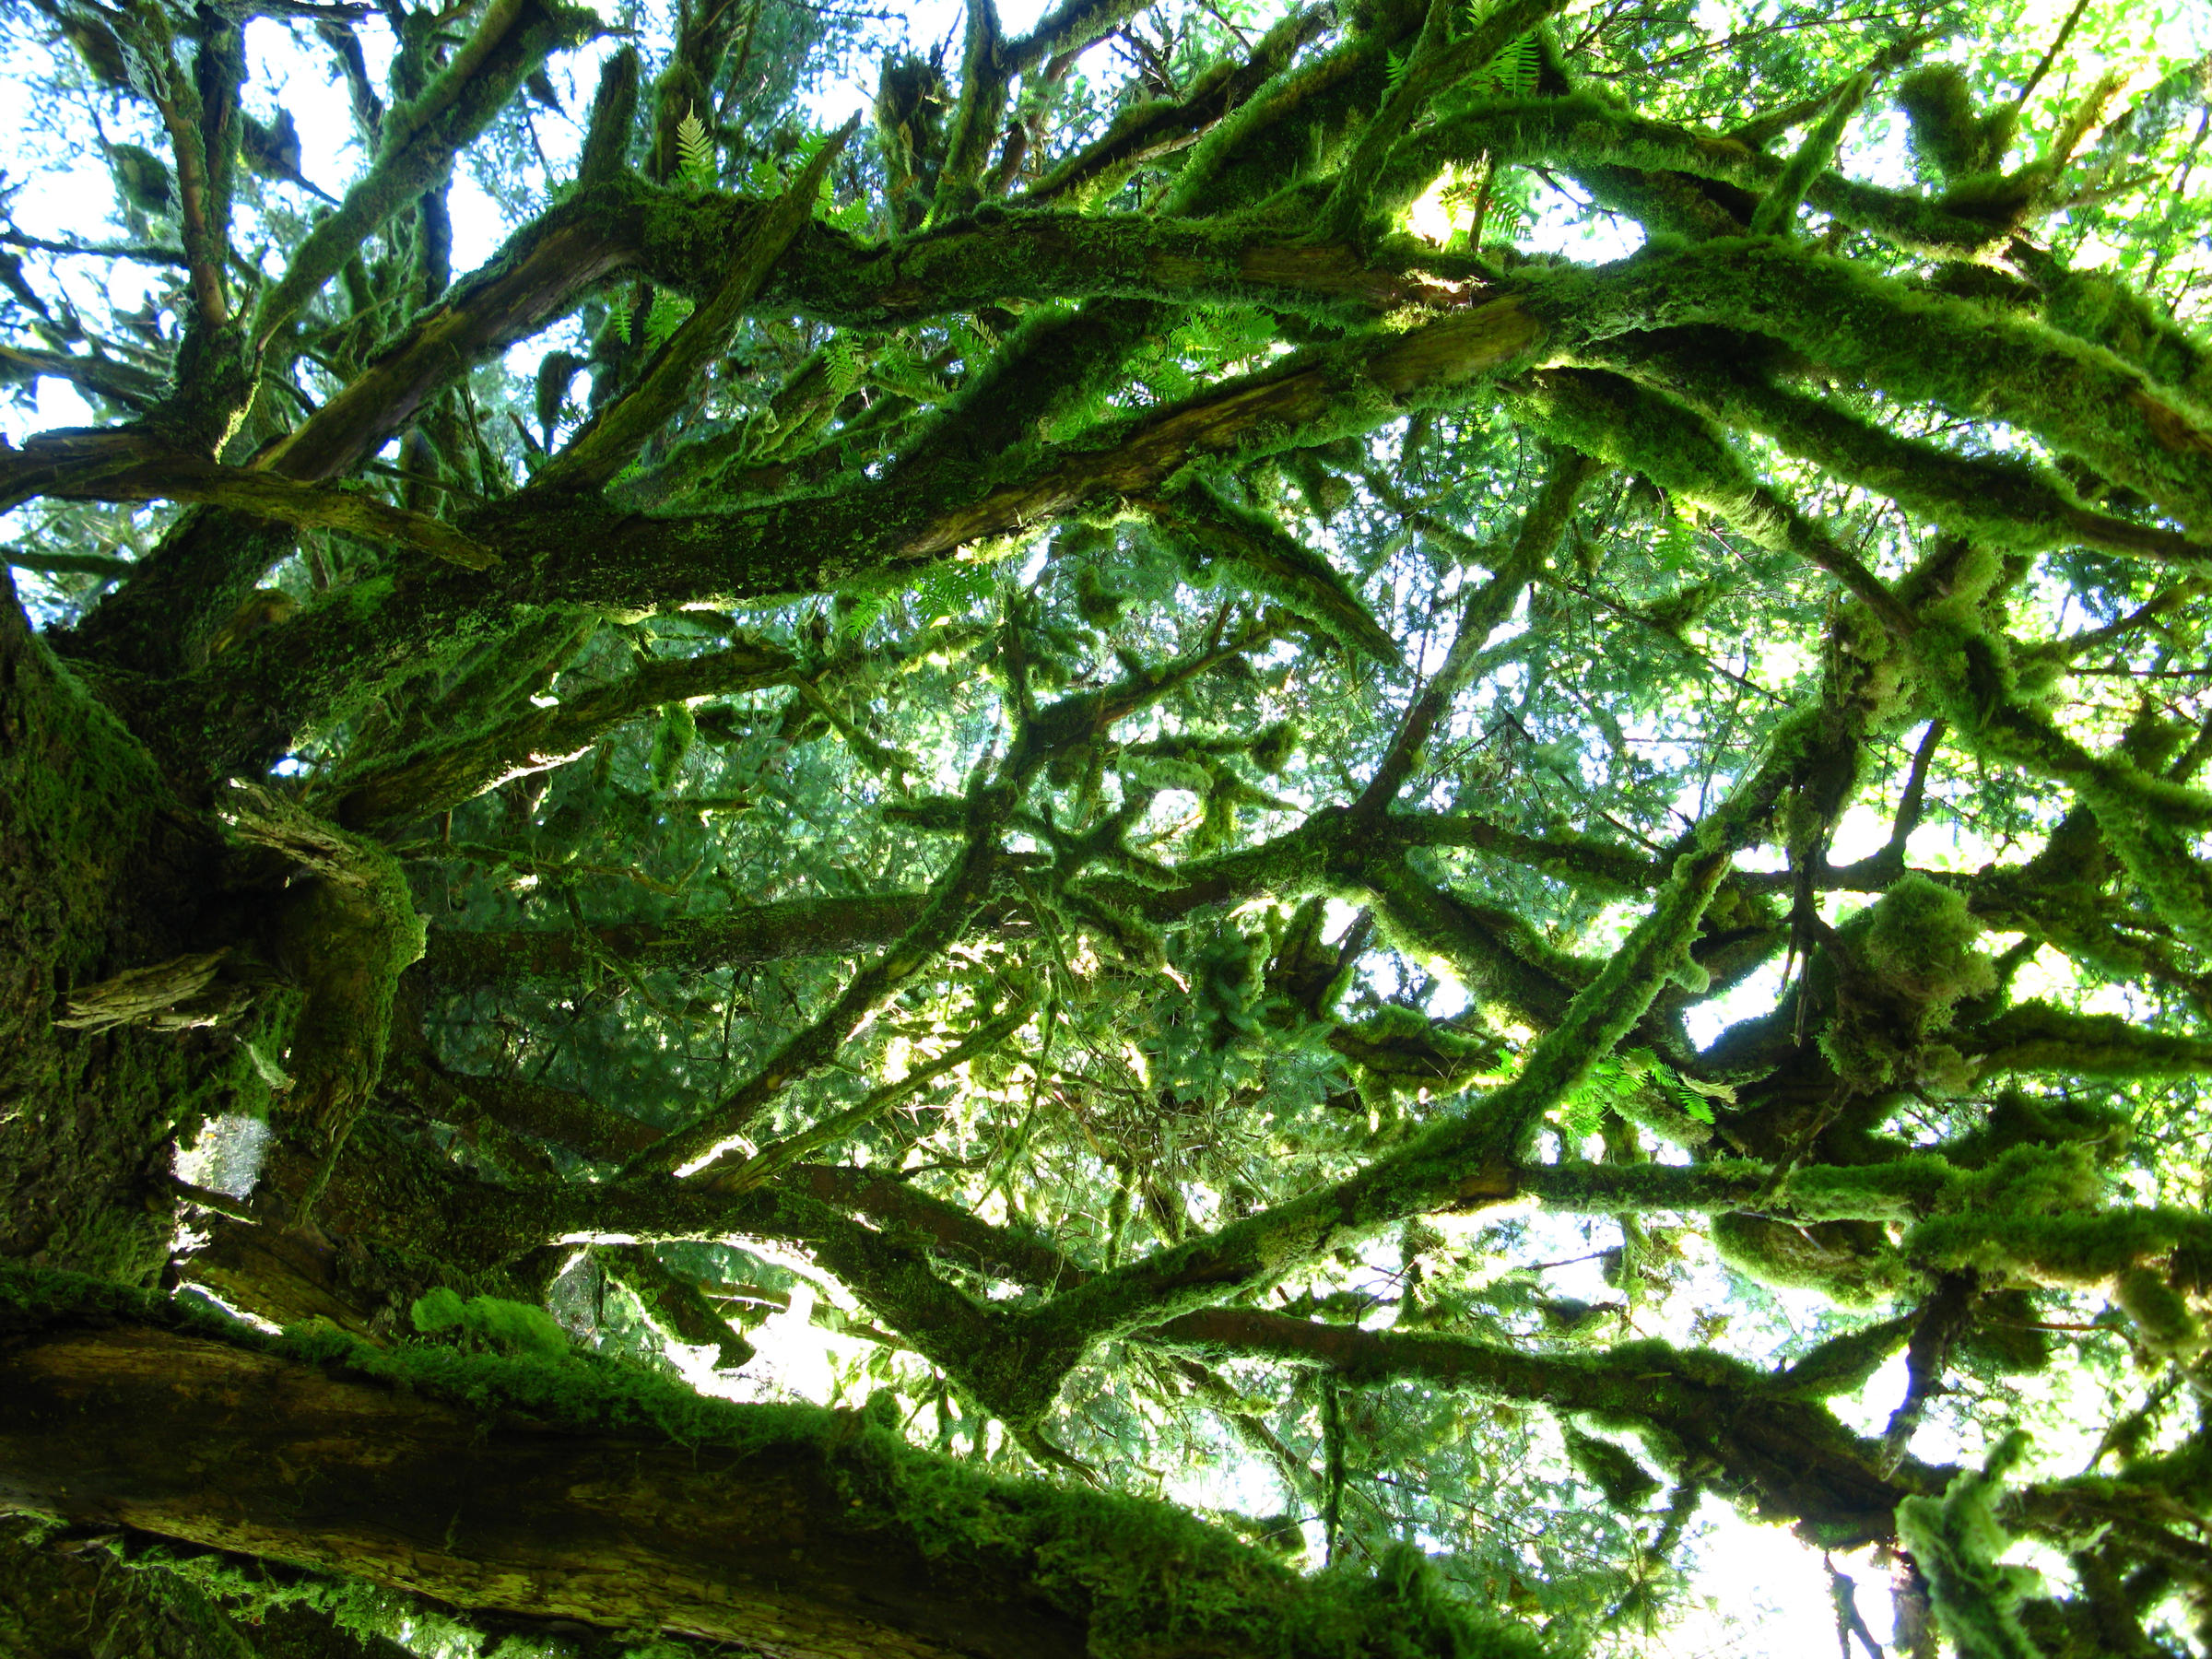 Looking up into Tongass trees.